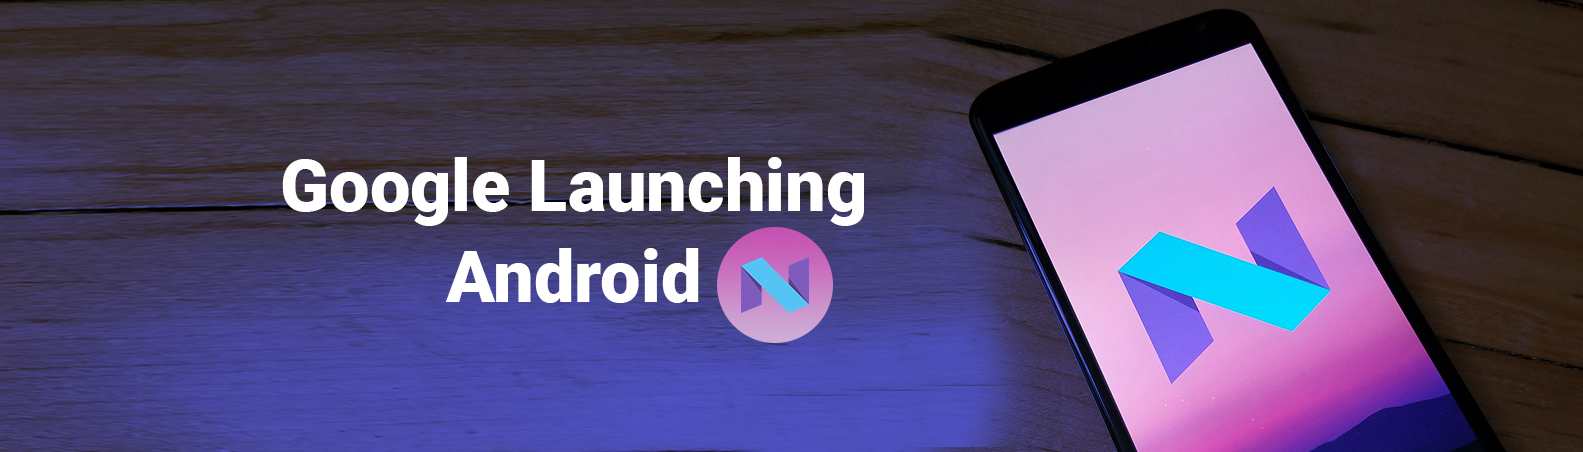 Android 7.0 Nougat Release,Review – Android Nougat